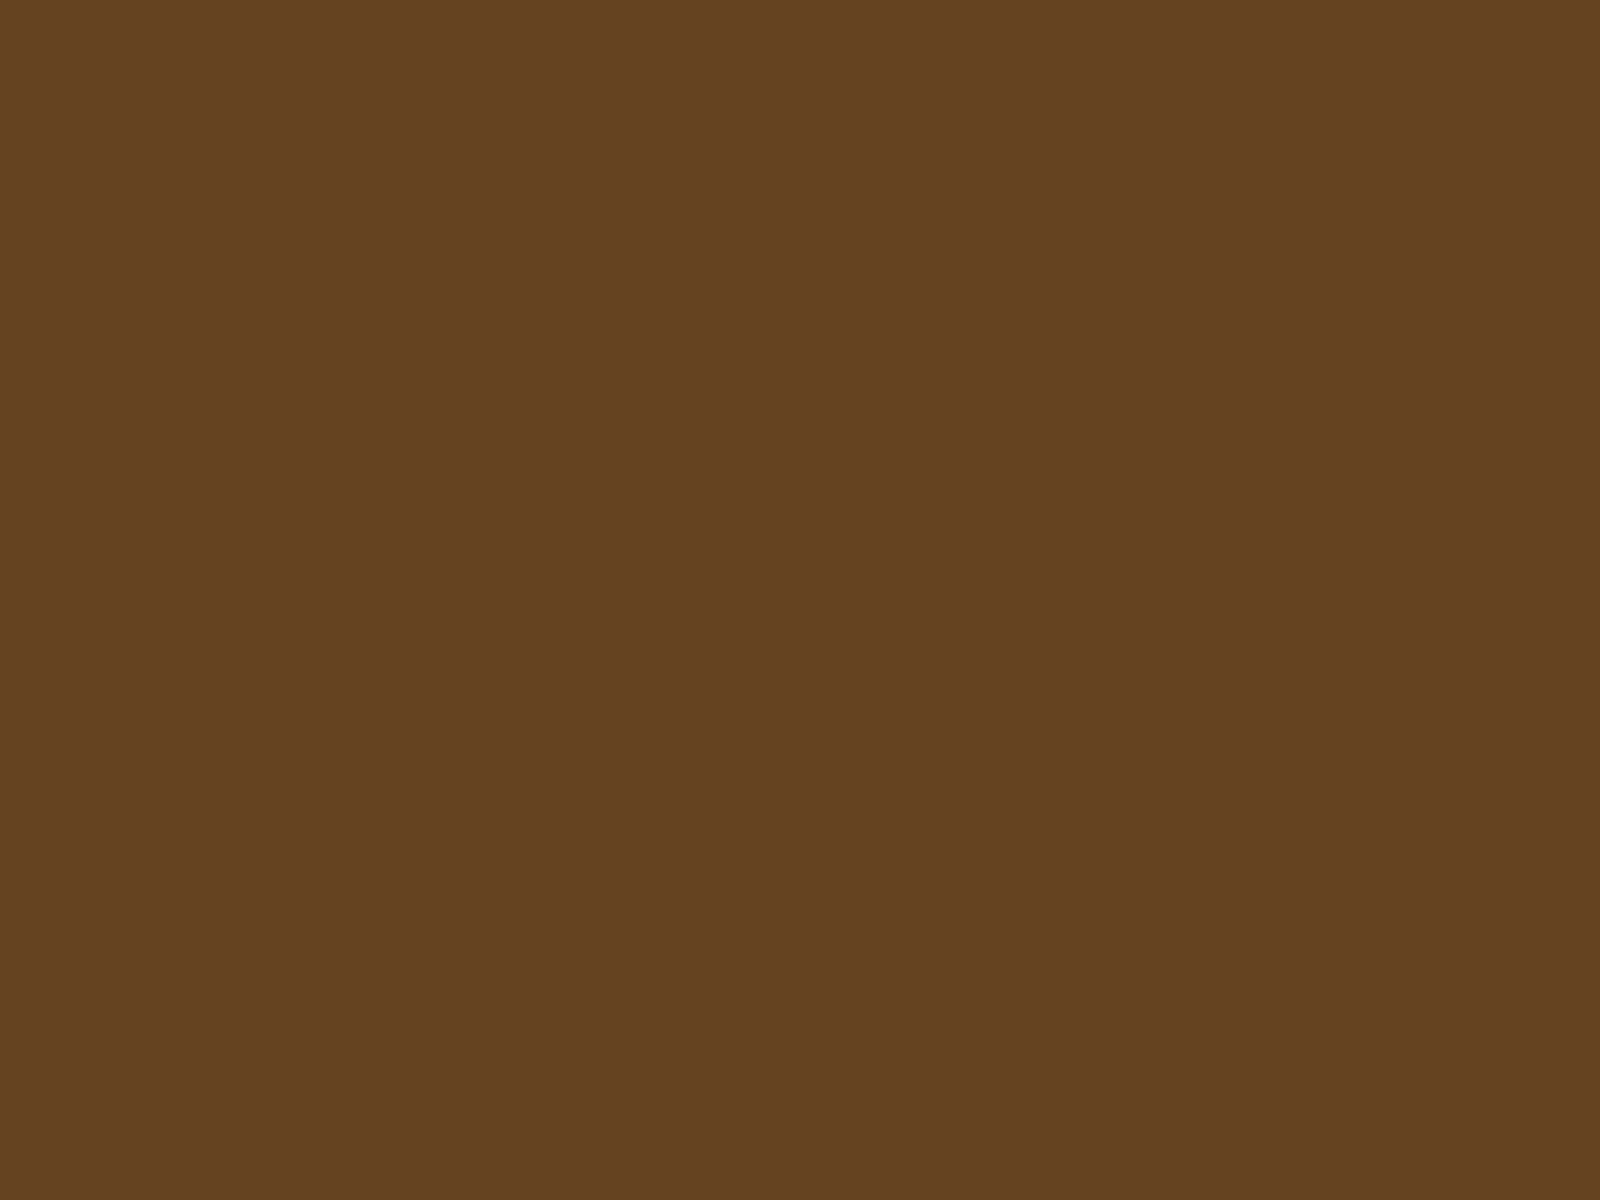 brown colour wallpaper - photo #10